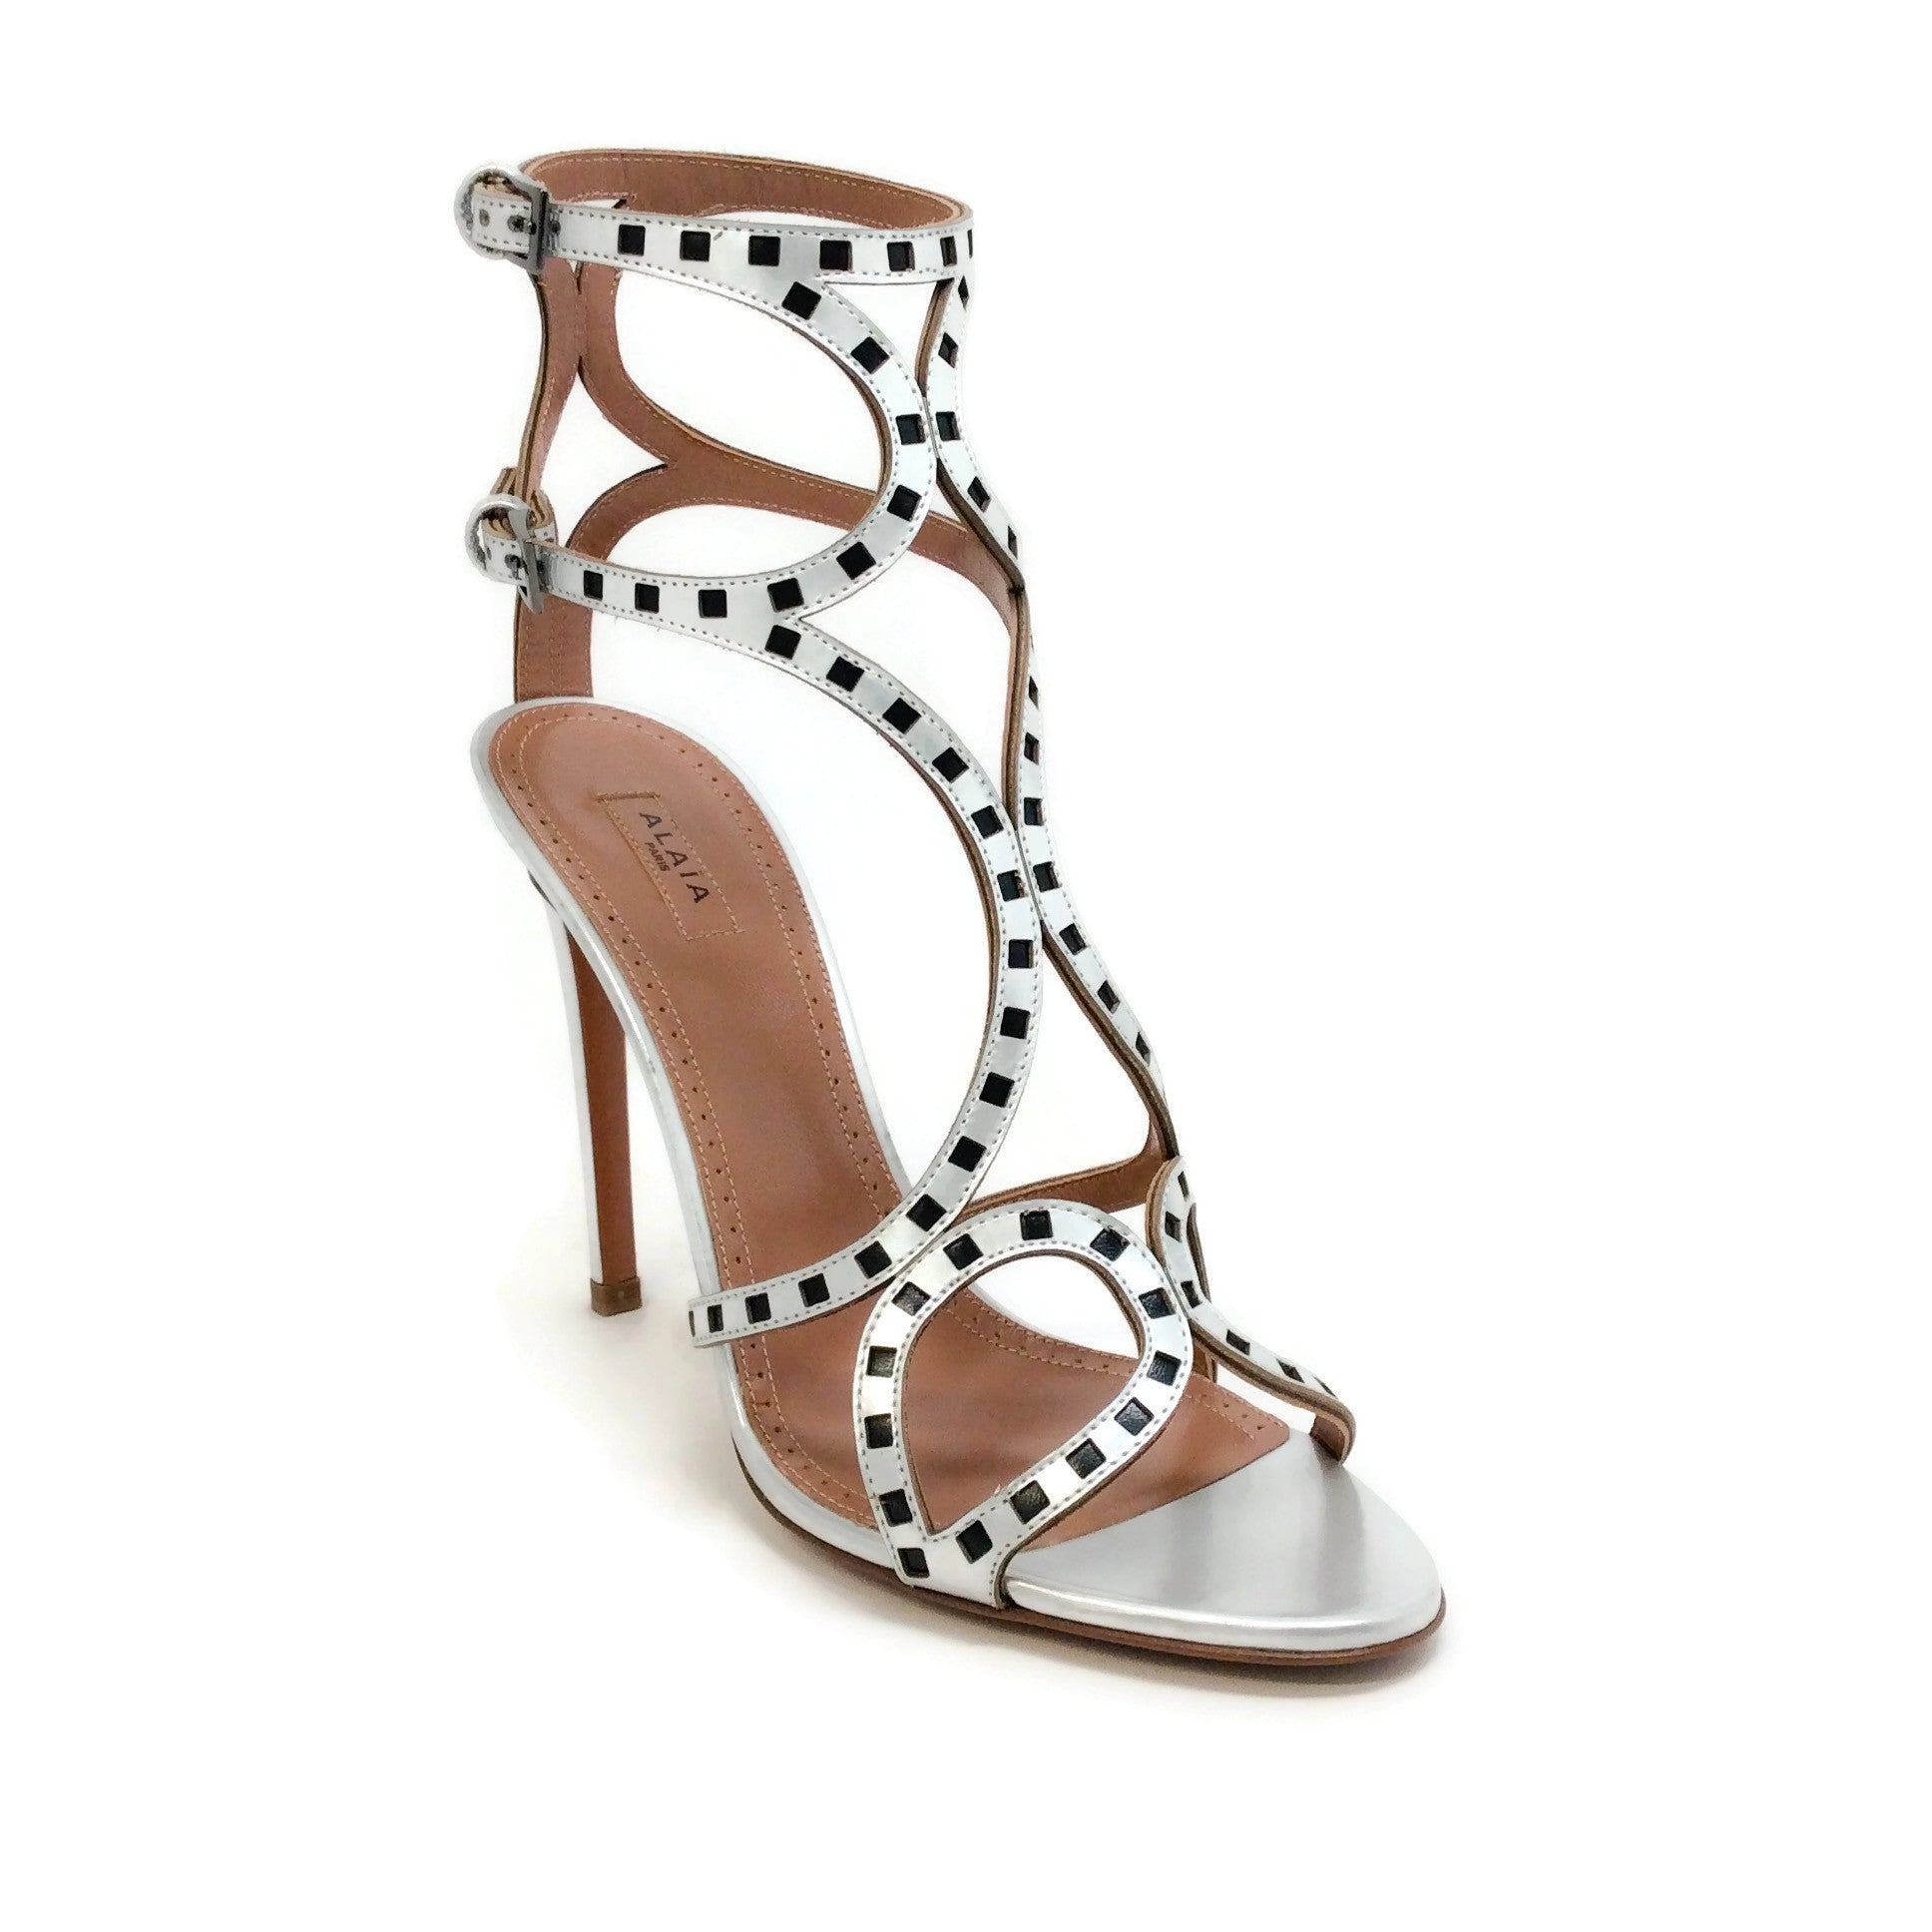 ALAÏA Silver / Black Square Cut Out Sandals